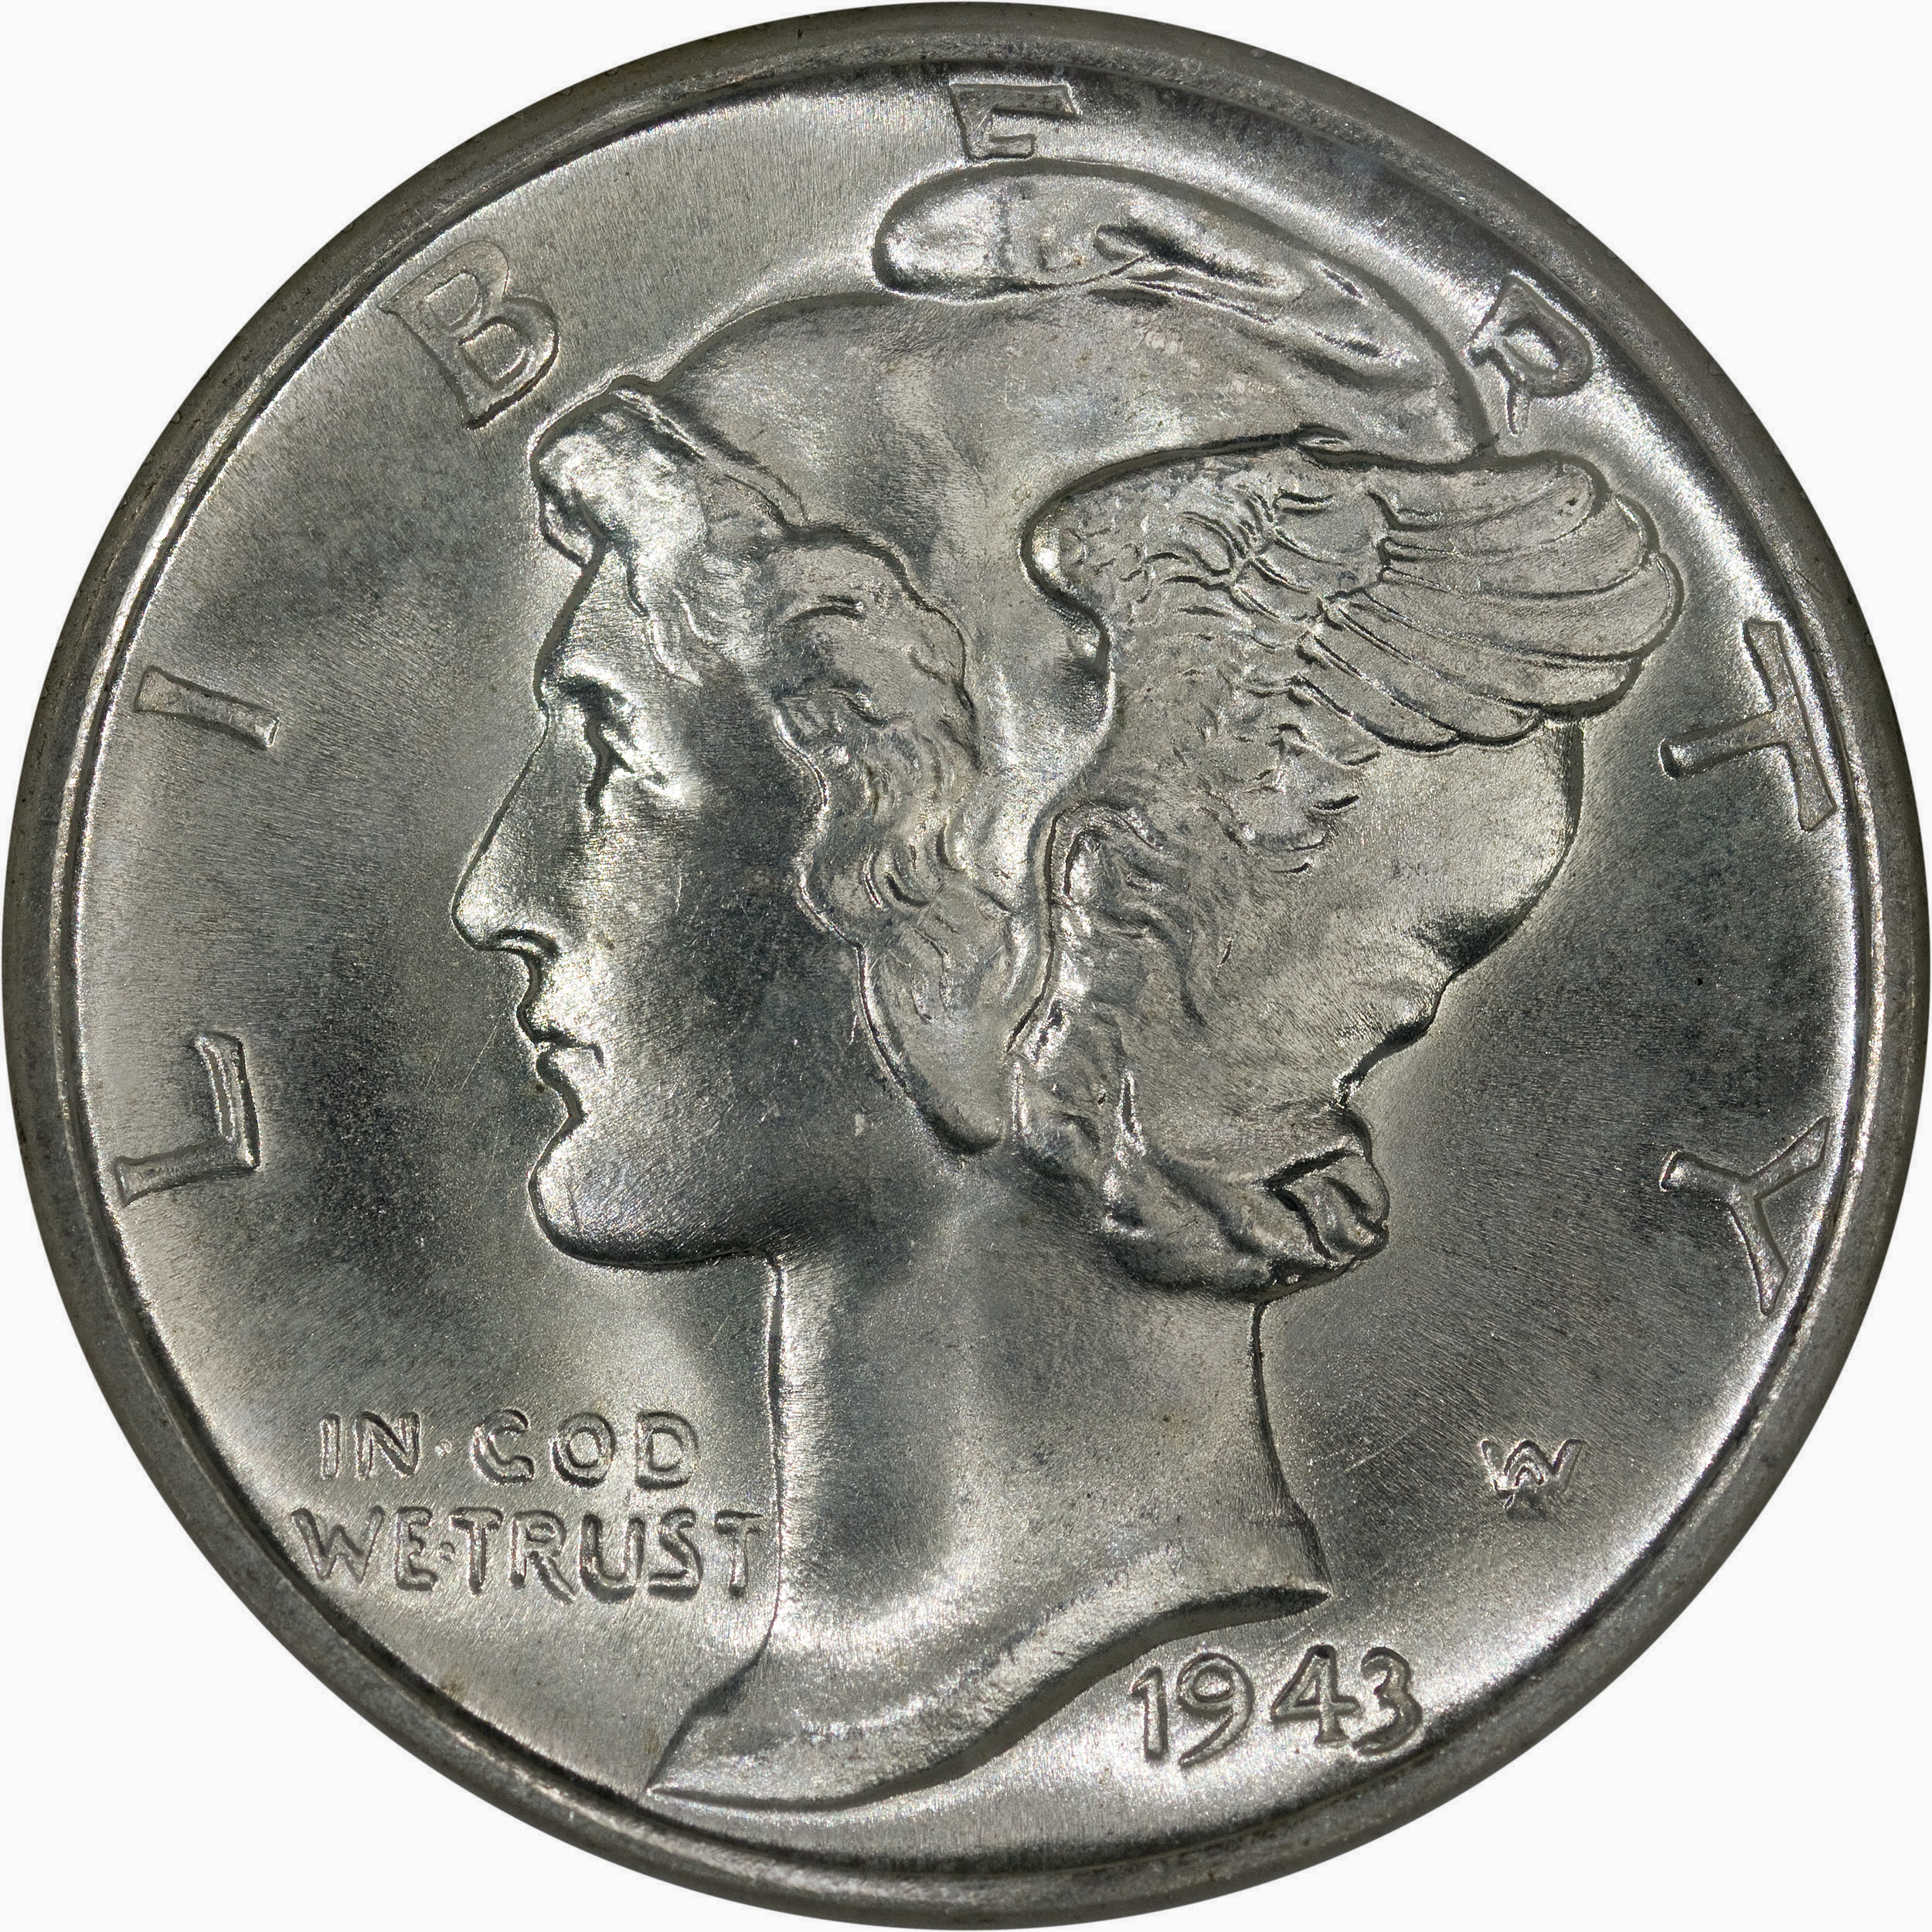 How Much Is a Silver Dime Worth?